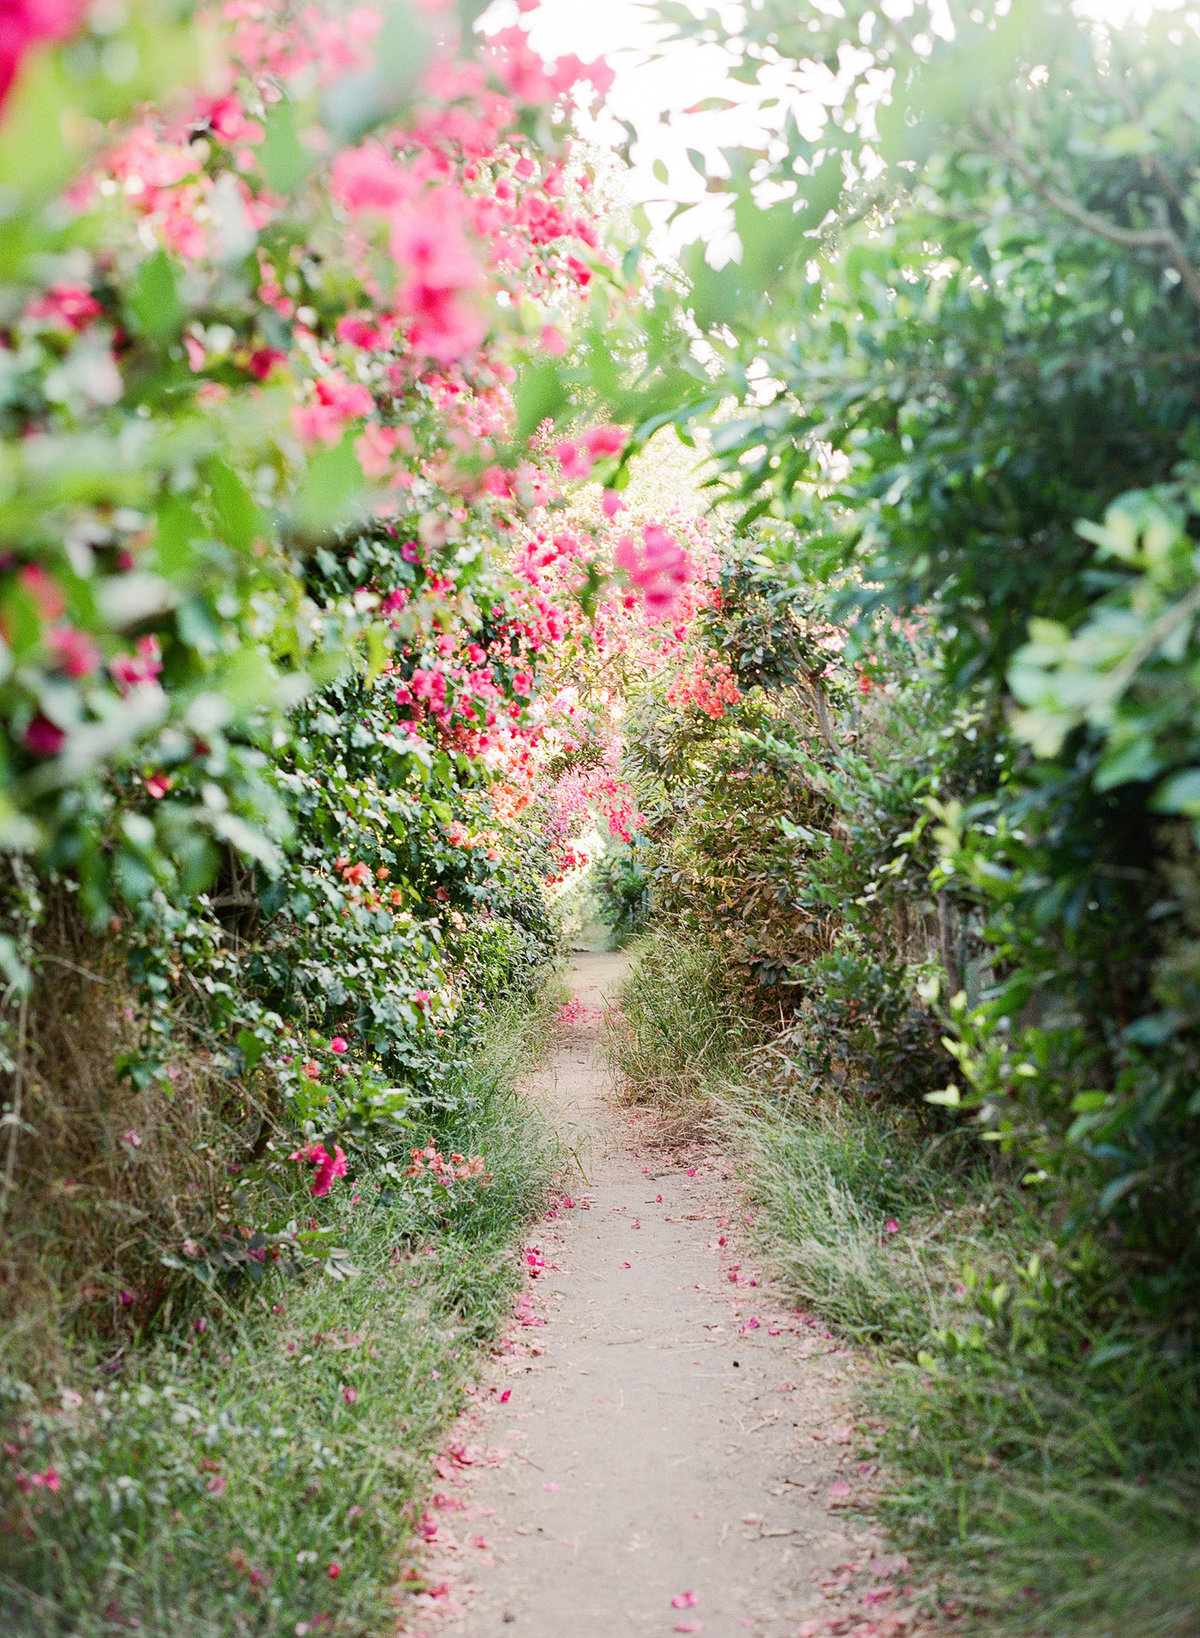 A lush garden portrait location with wild growing bougainvillea